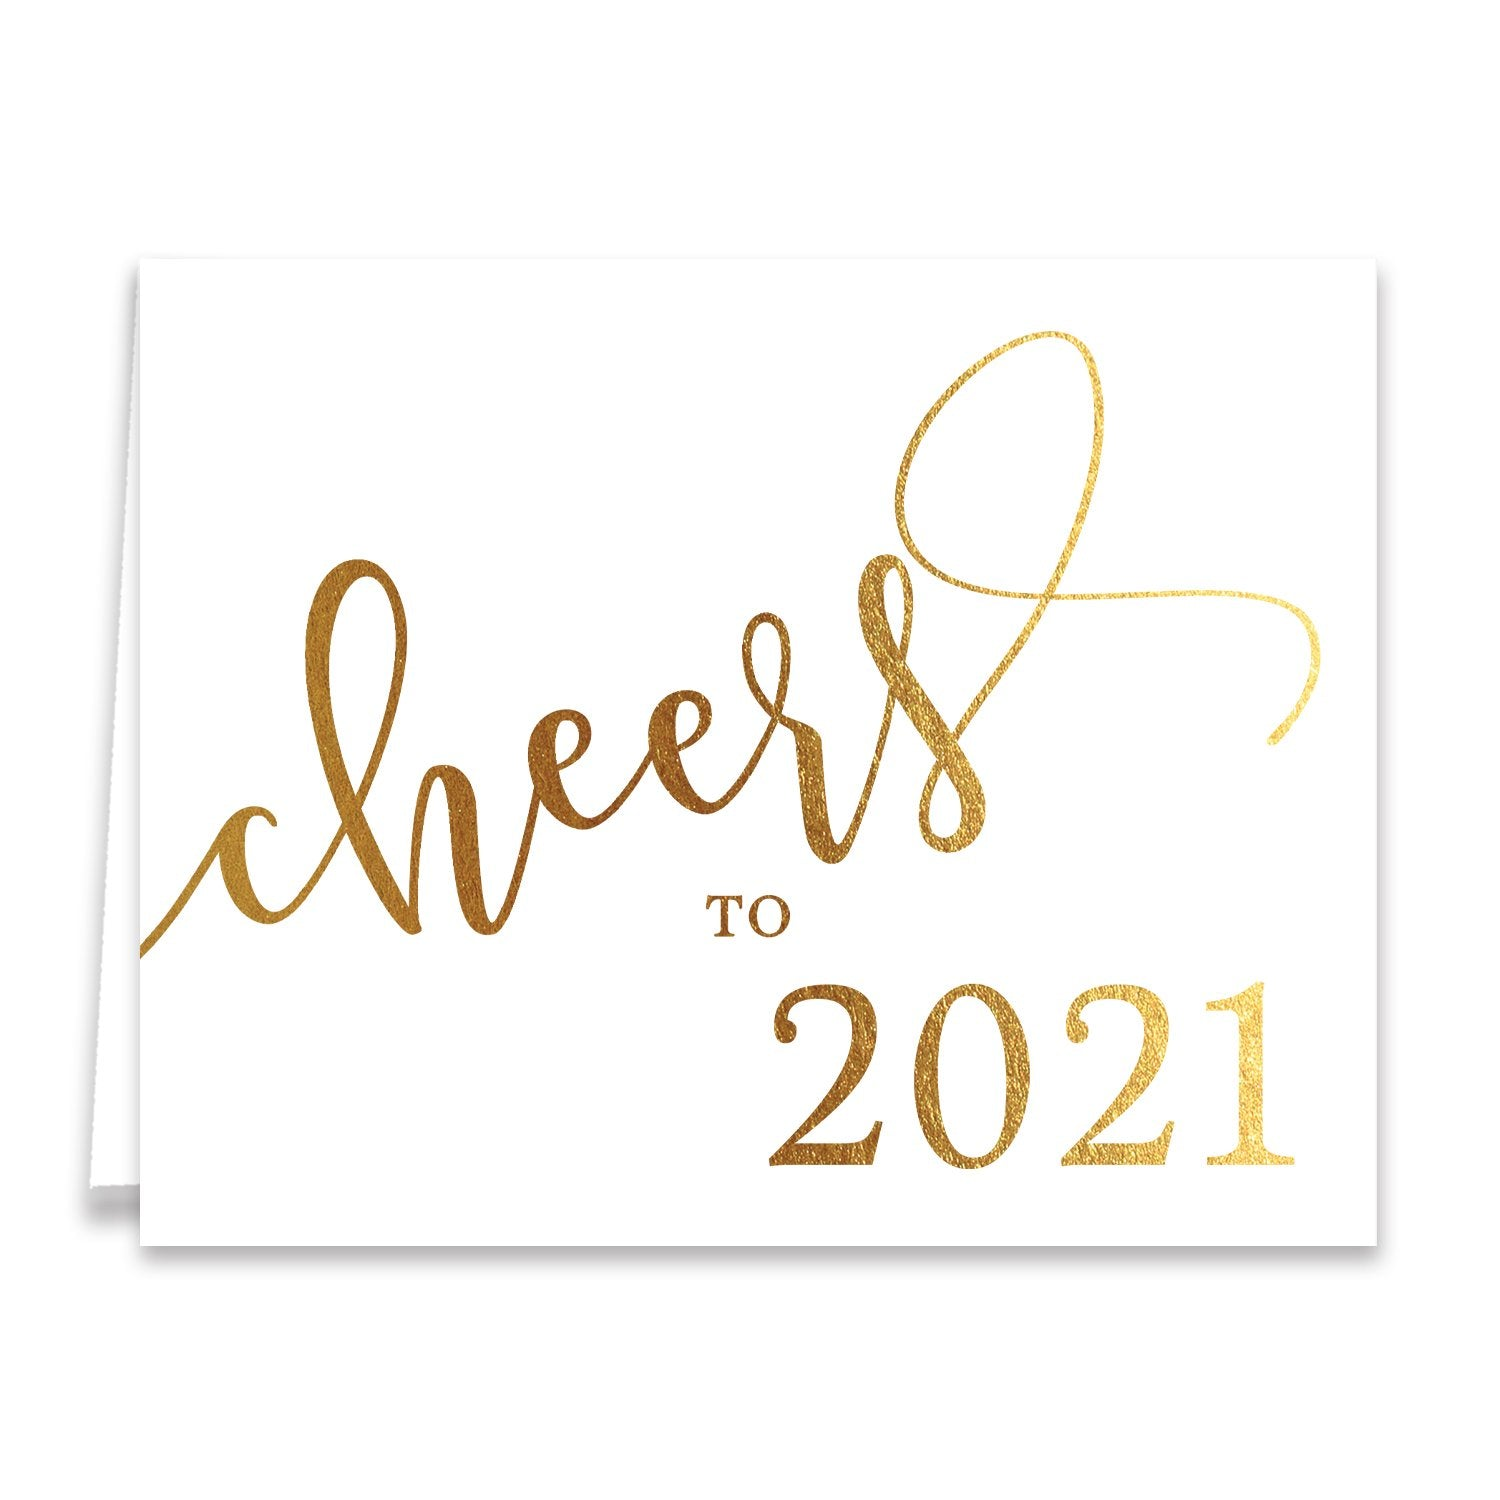 Cheers to 2018 Gold Foil Boxed Holiday Cards | Marley